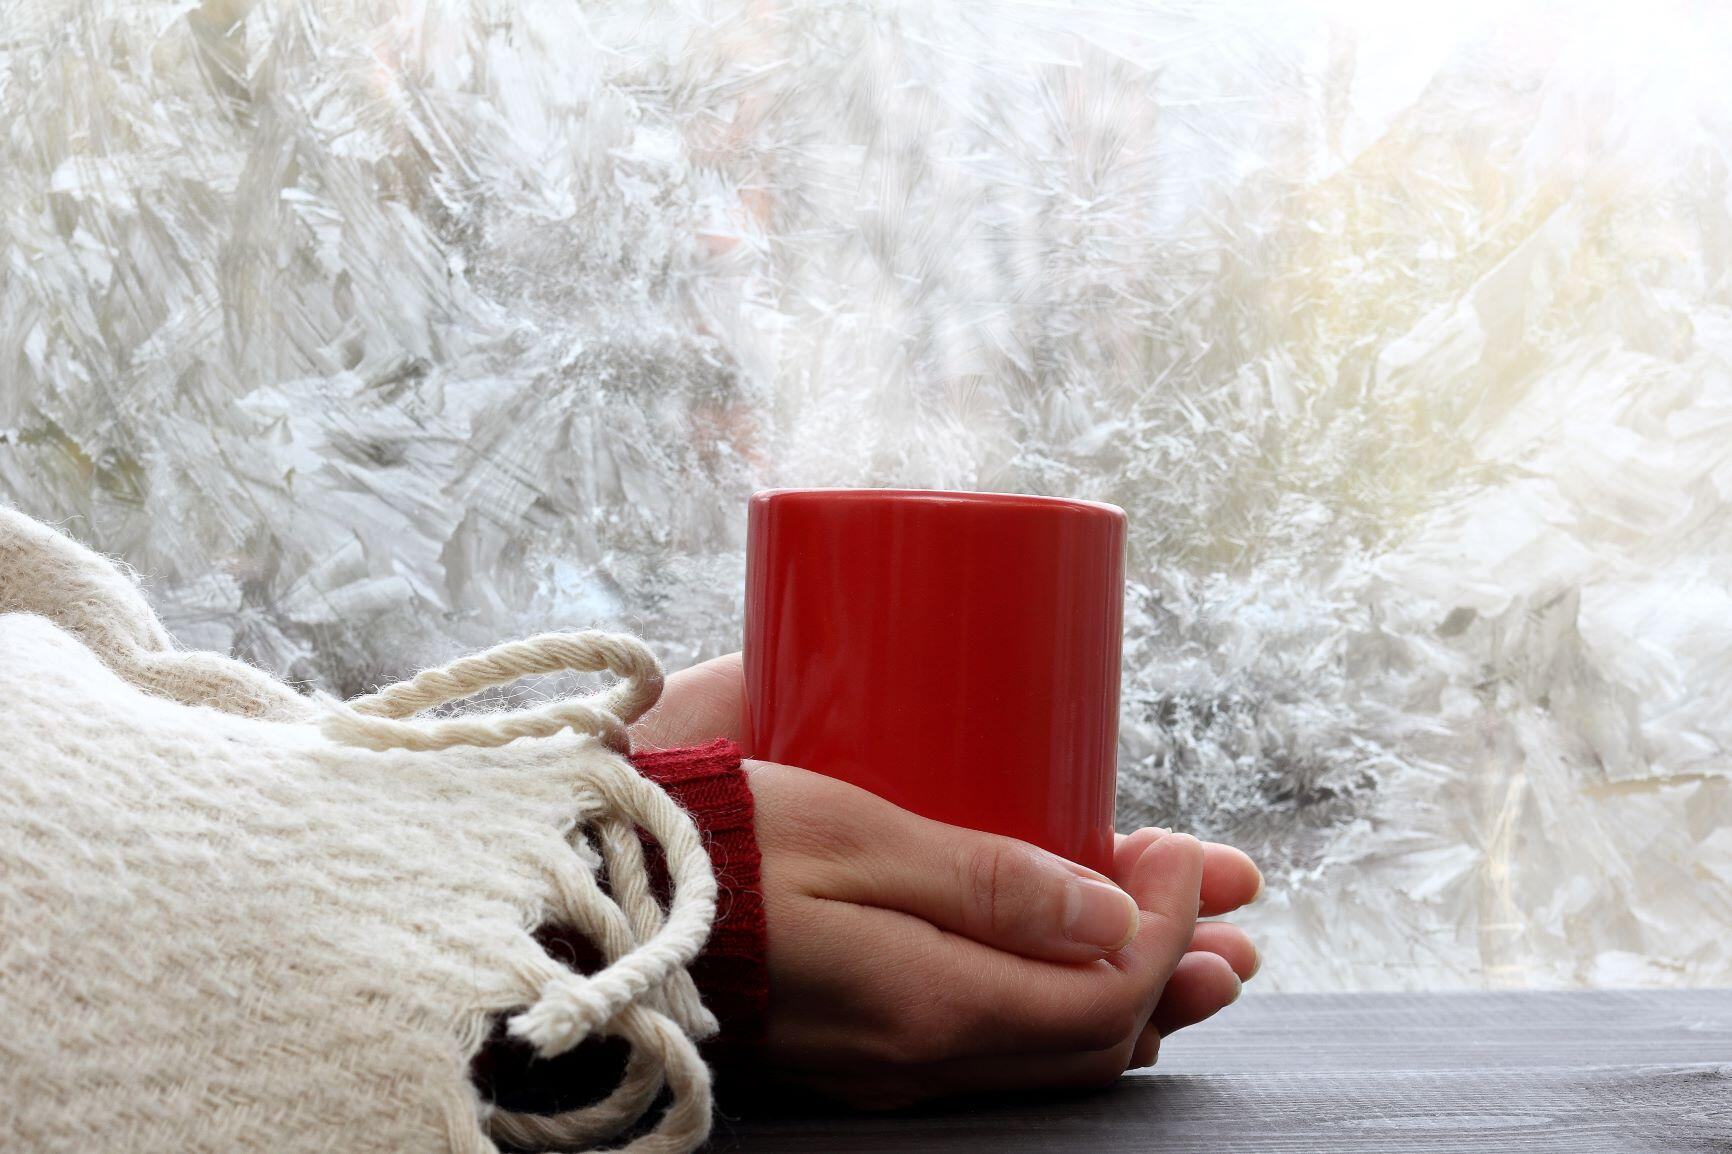 Image of woman holding mug in hands while dressed warm inside home heating solutions